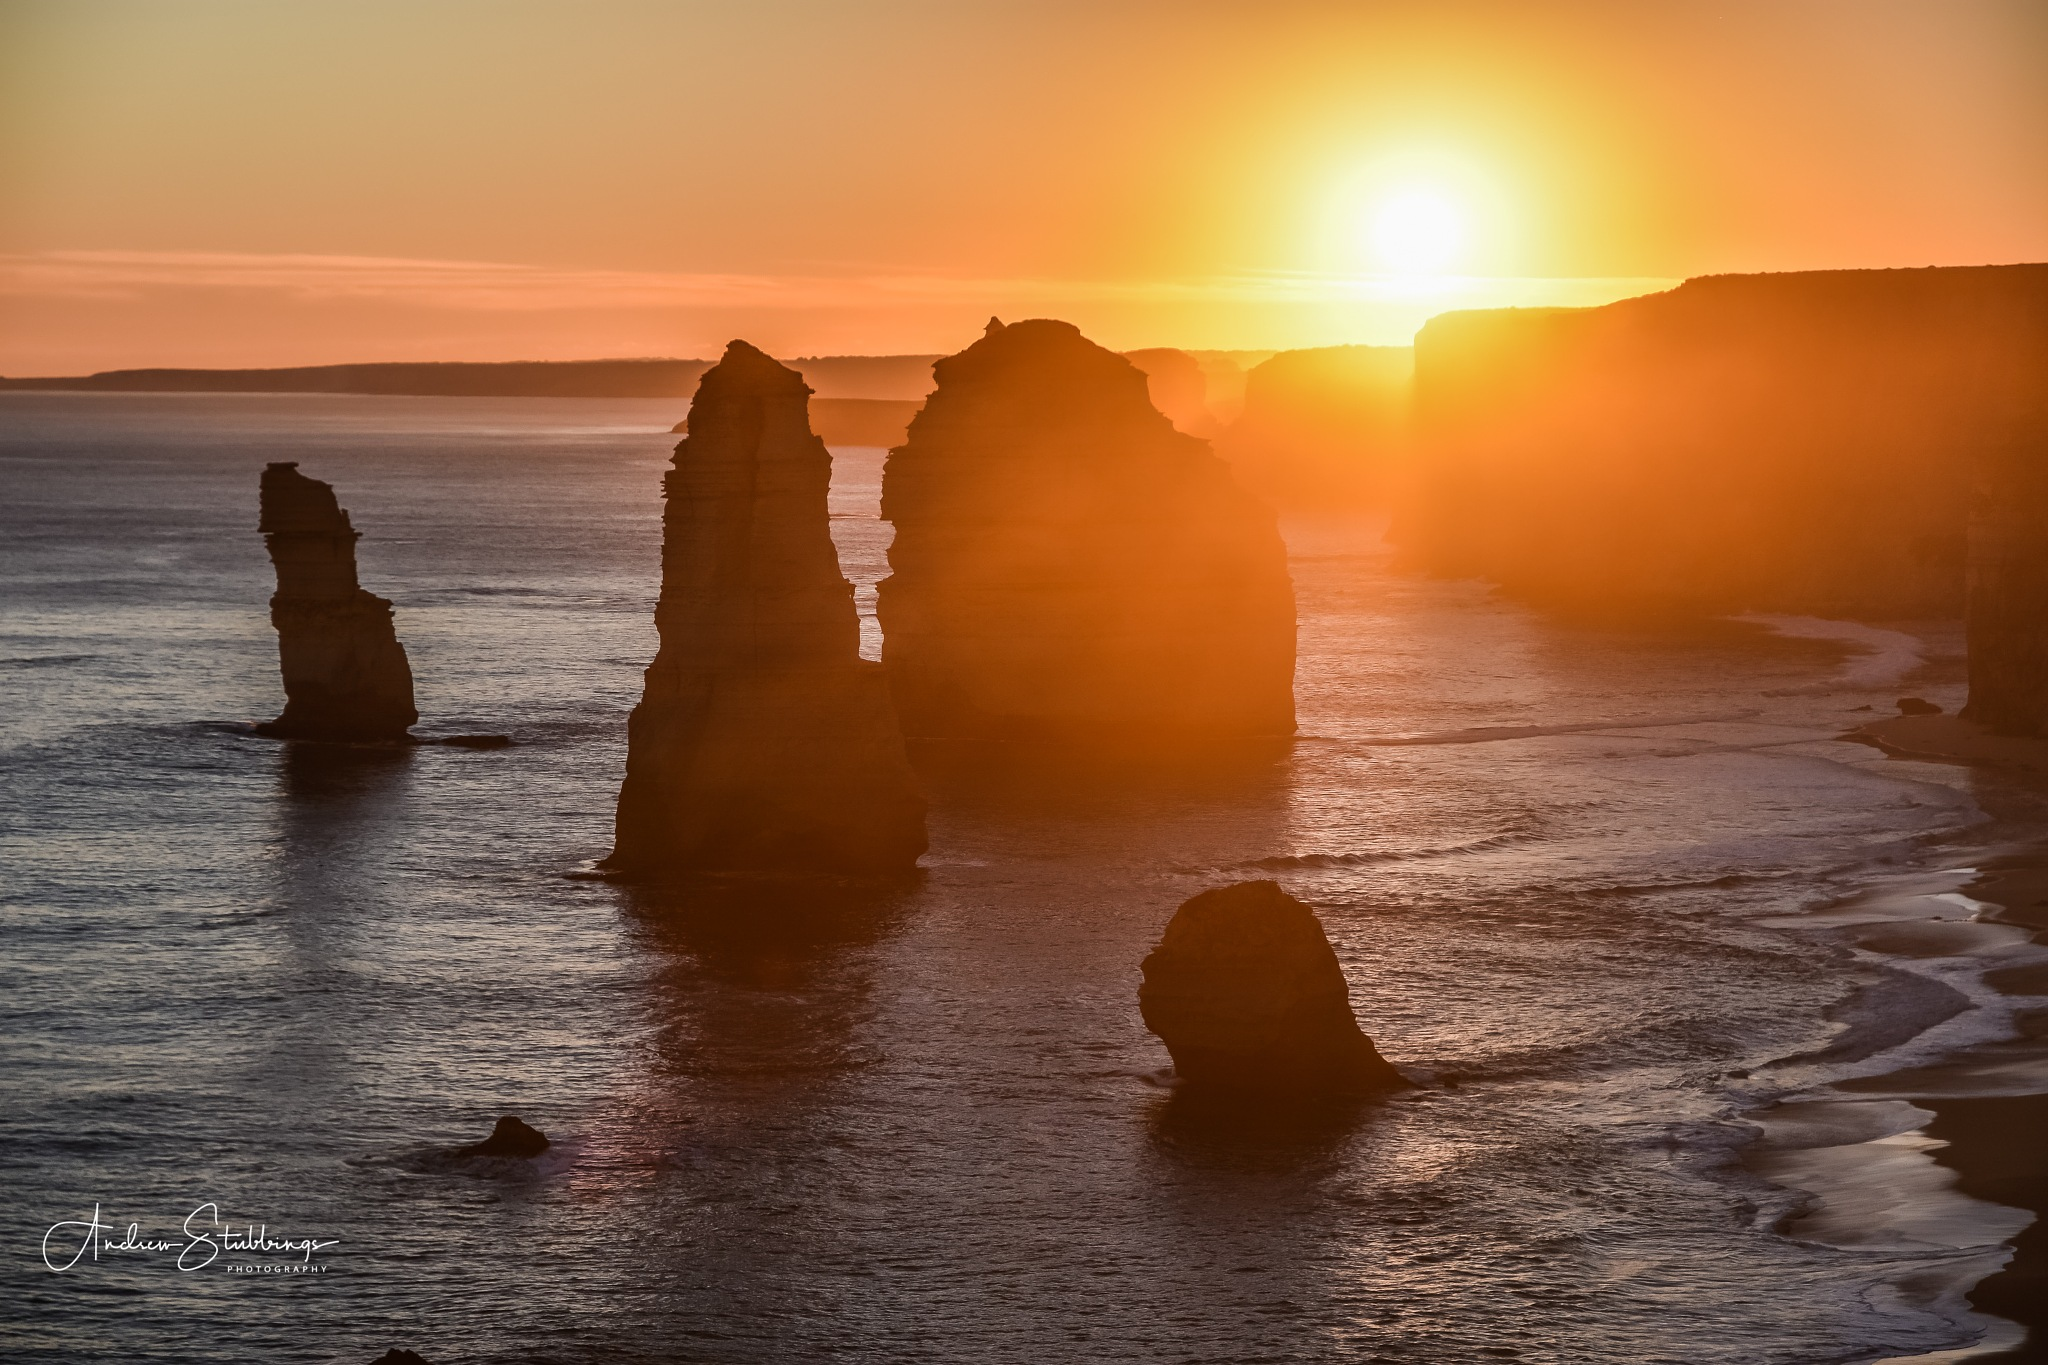 Winter sunset 12 Apostles by Andrew Stubbings